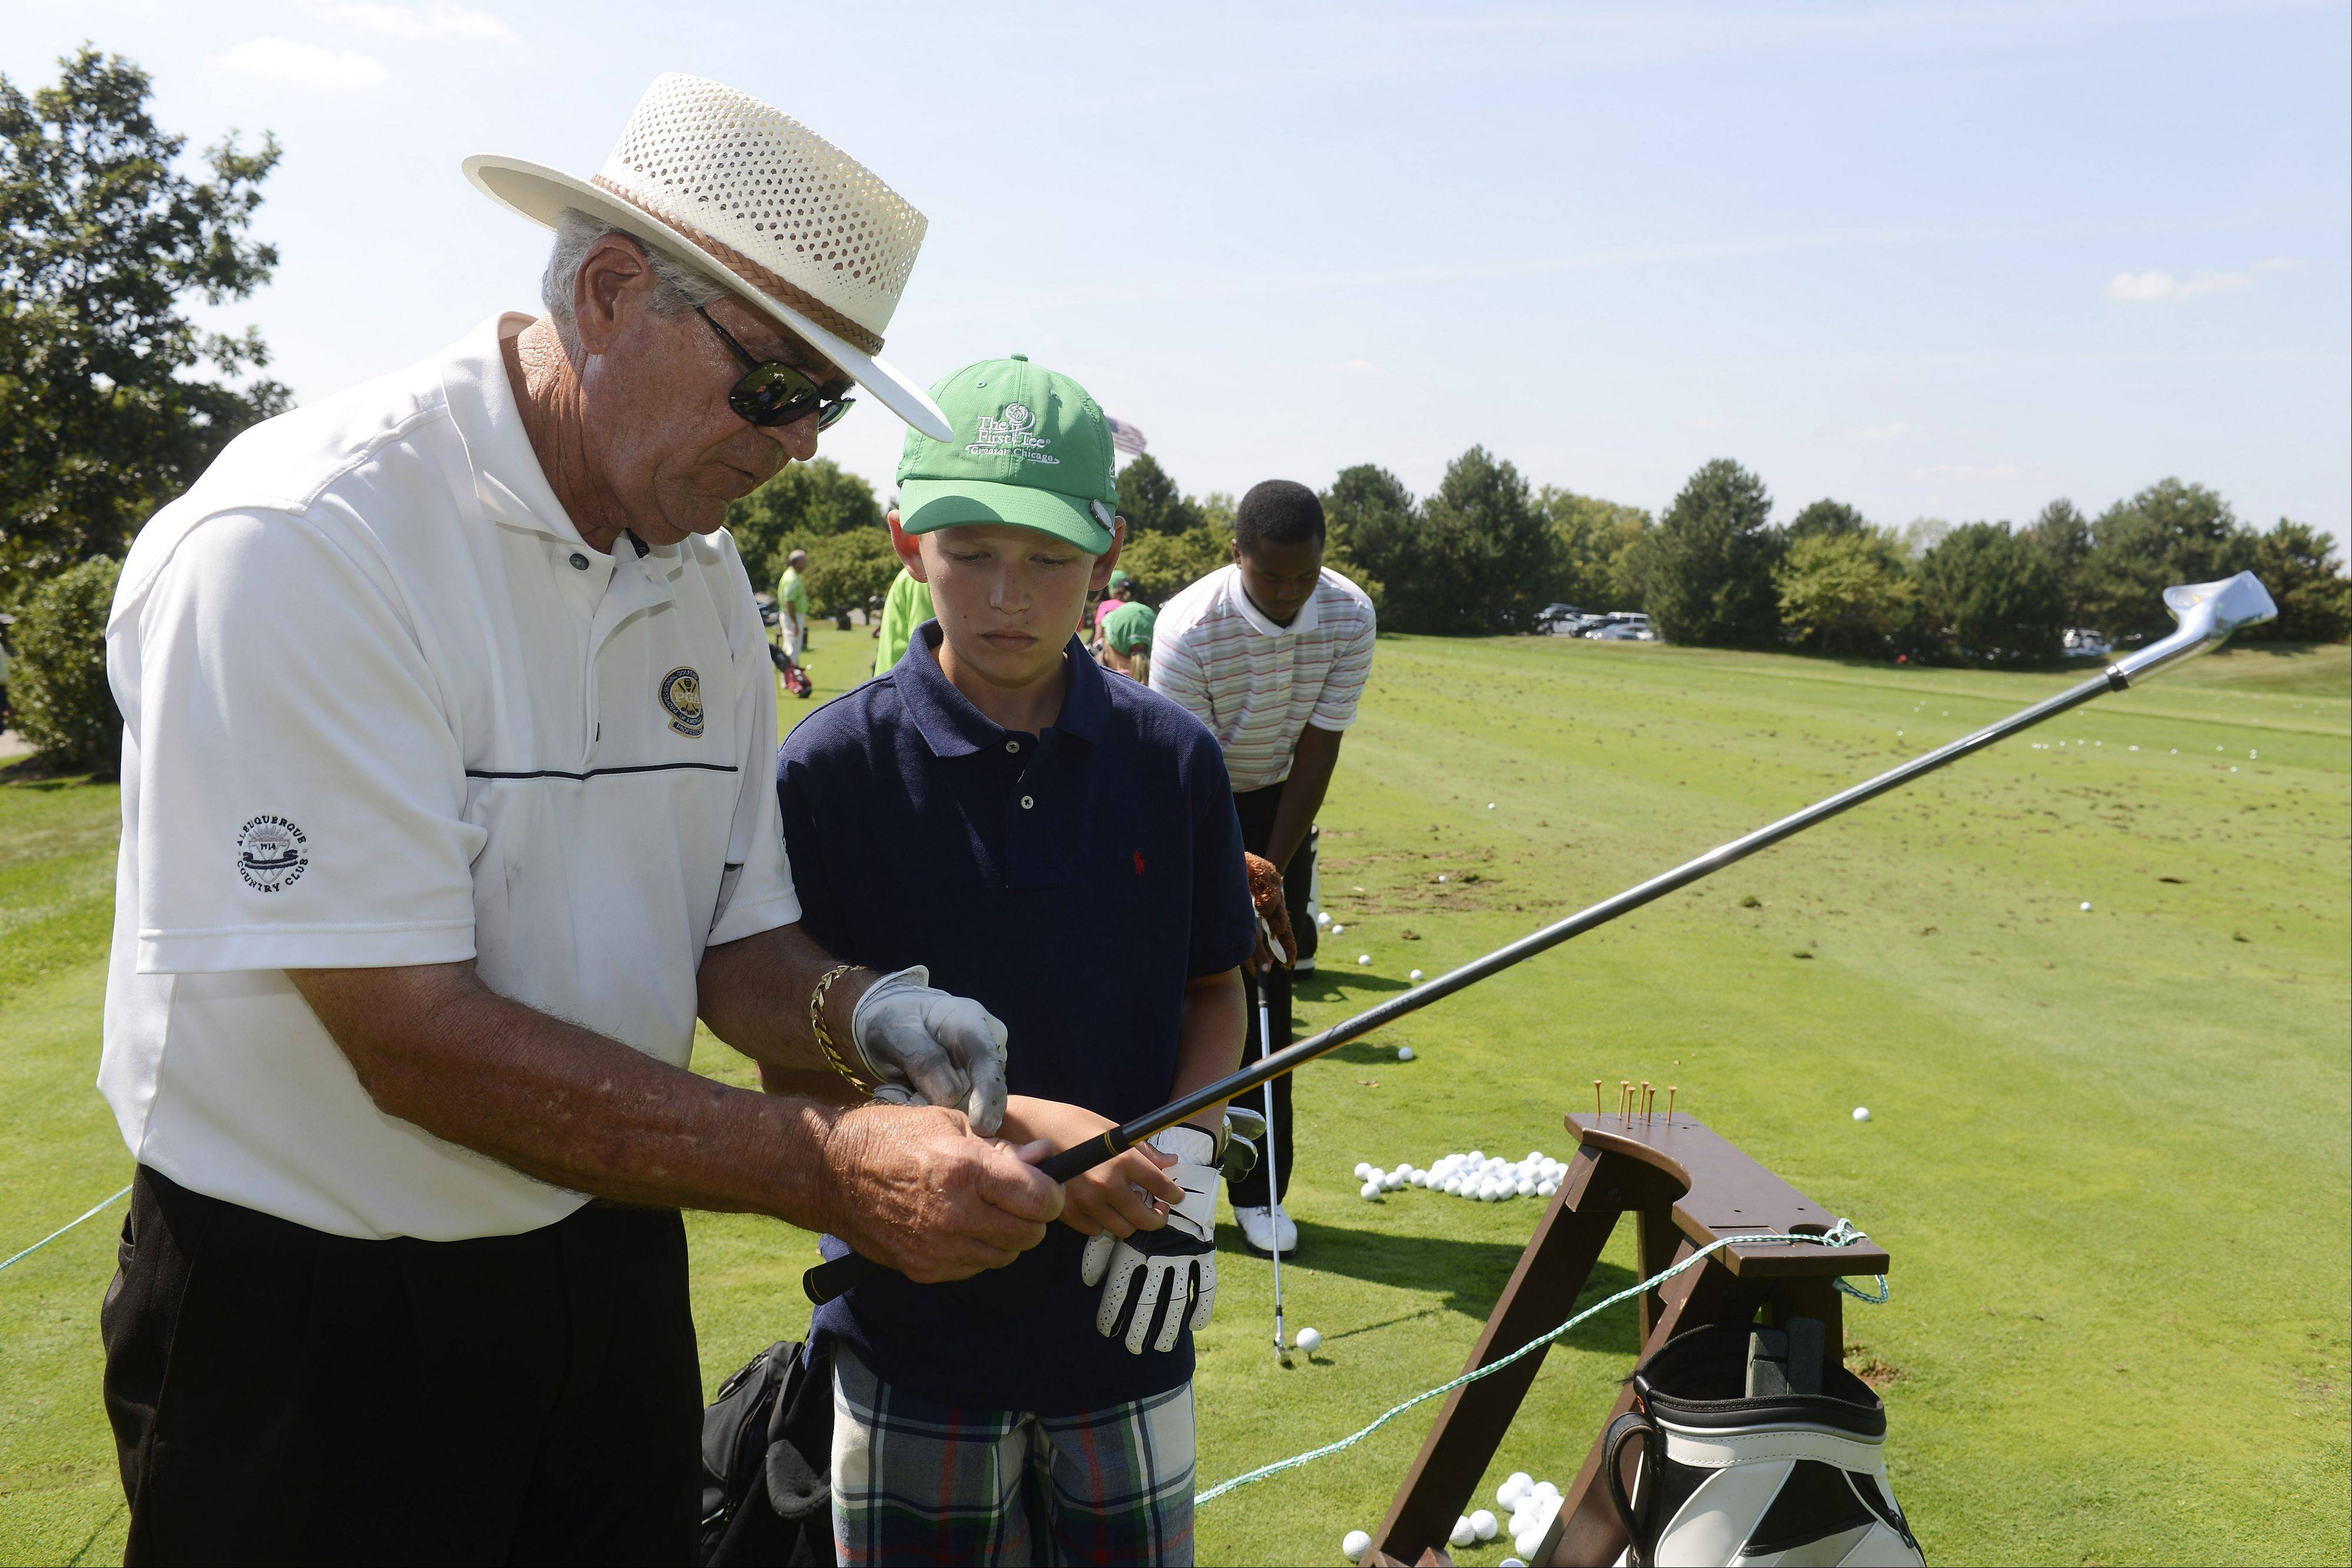 Golf teaching assistant Stan Ferguson works with Jarrett Lovitz, 11, of Gurnee during the First Tee golf event at Ivanhoe Club near Mundelein. First Tee uses the game of golf to provide education programs that build character. Thirteen kids were rewarded for their good choices with a special day at Ivanhoe.